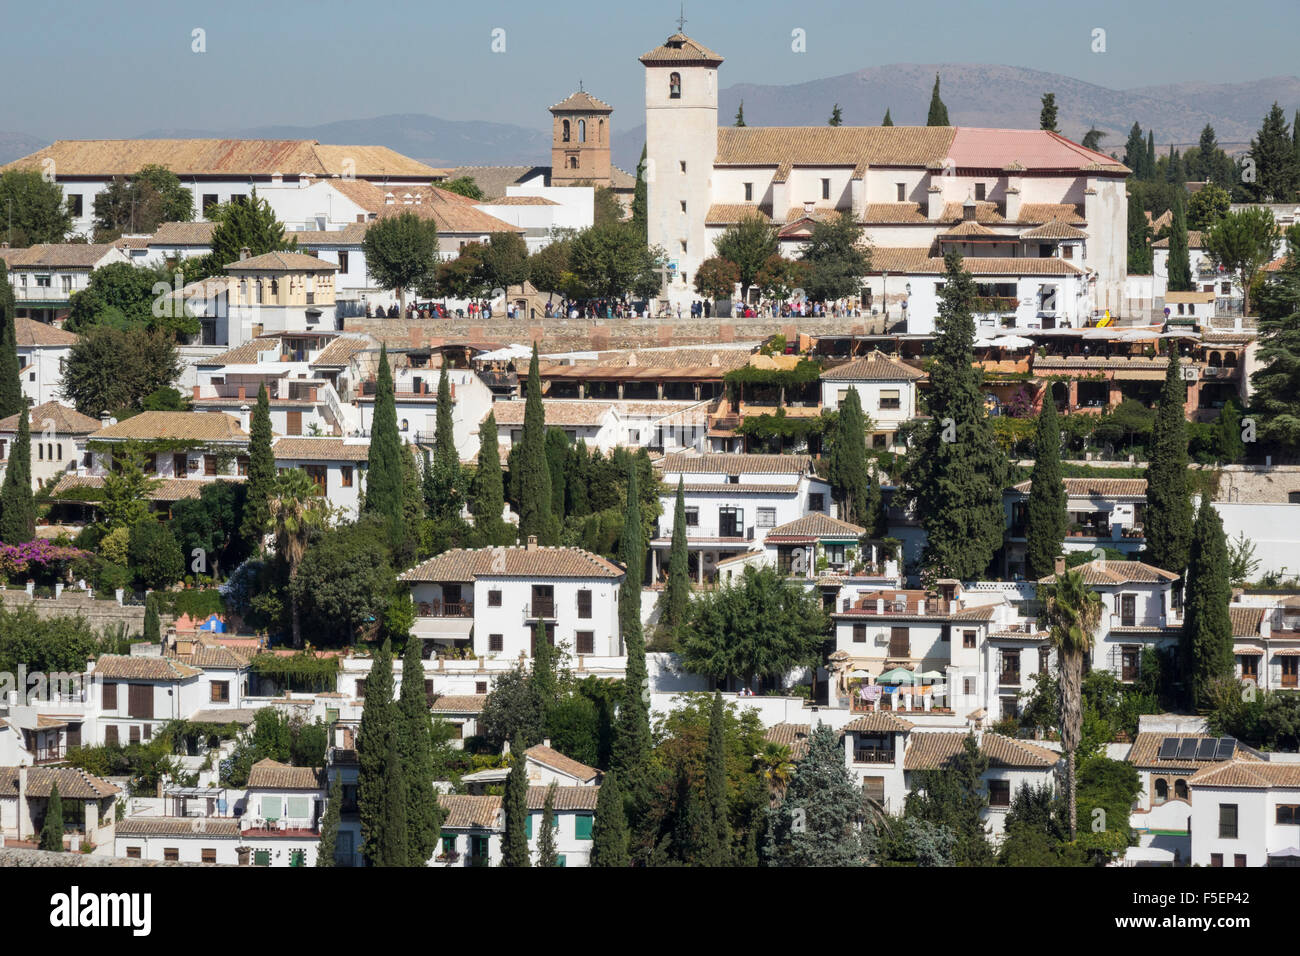 Granada in Andalucia, Spain, Europe - Stock Image